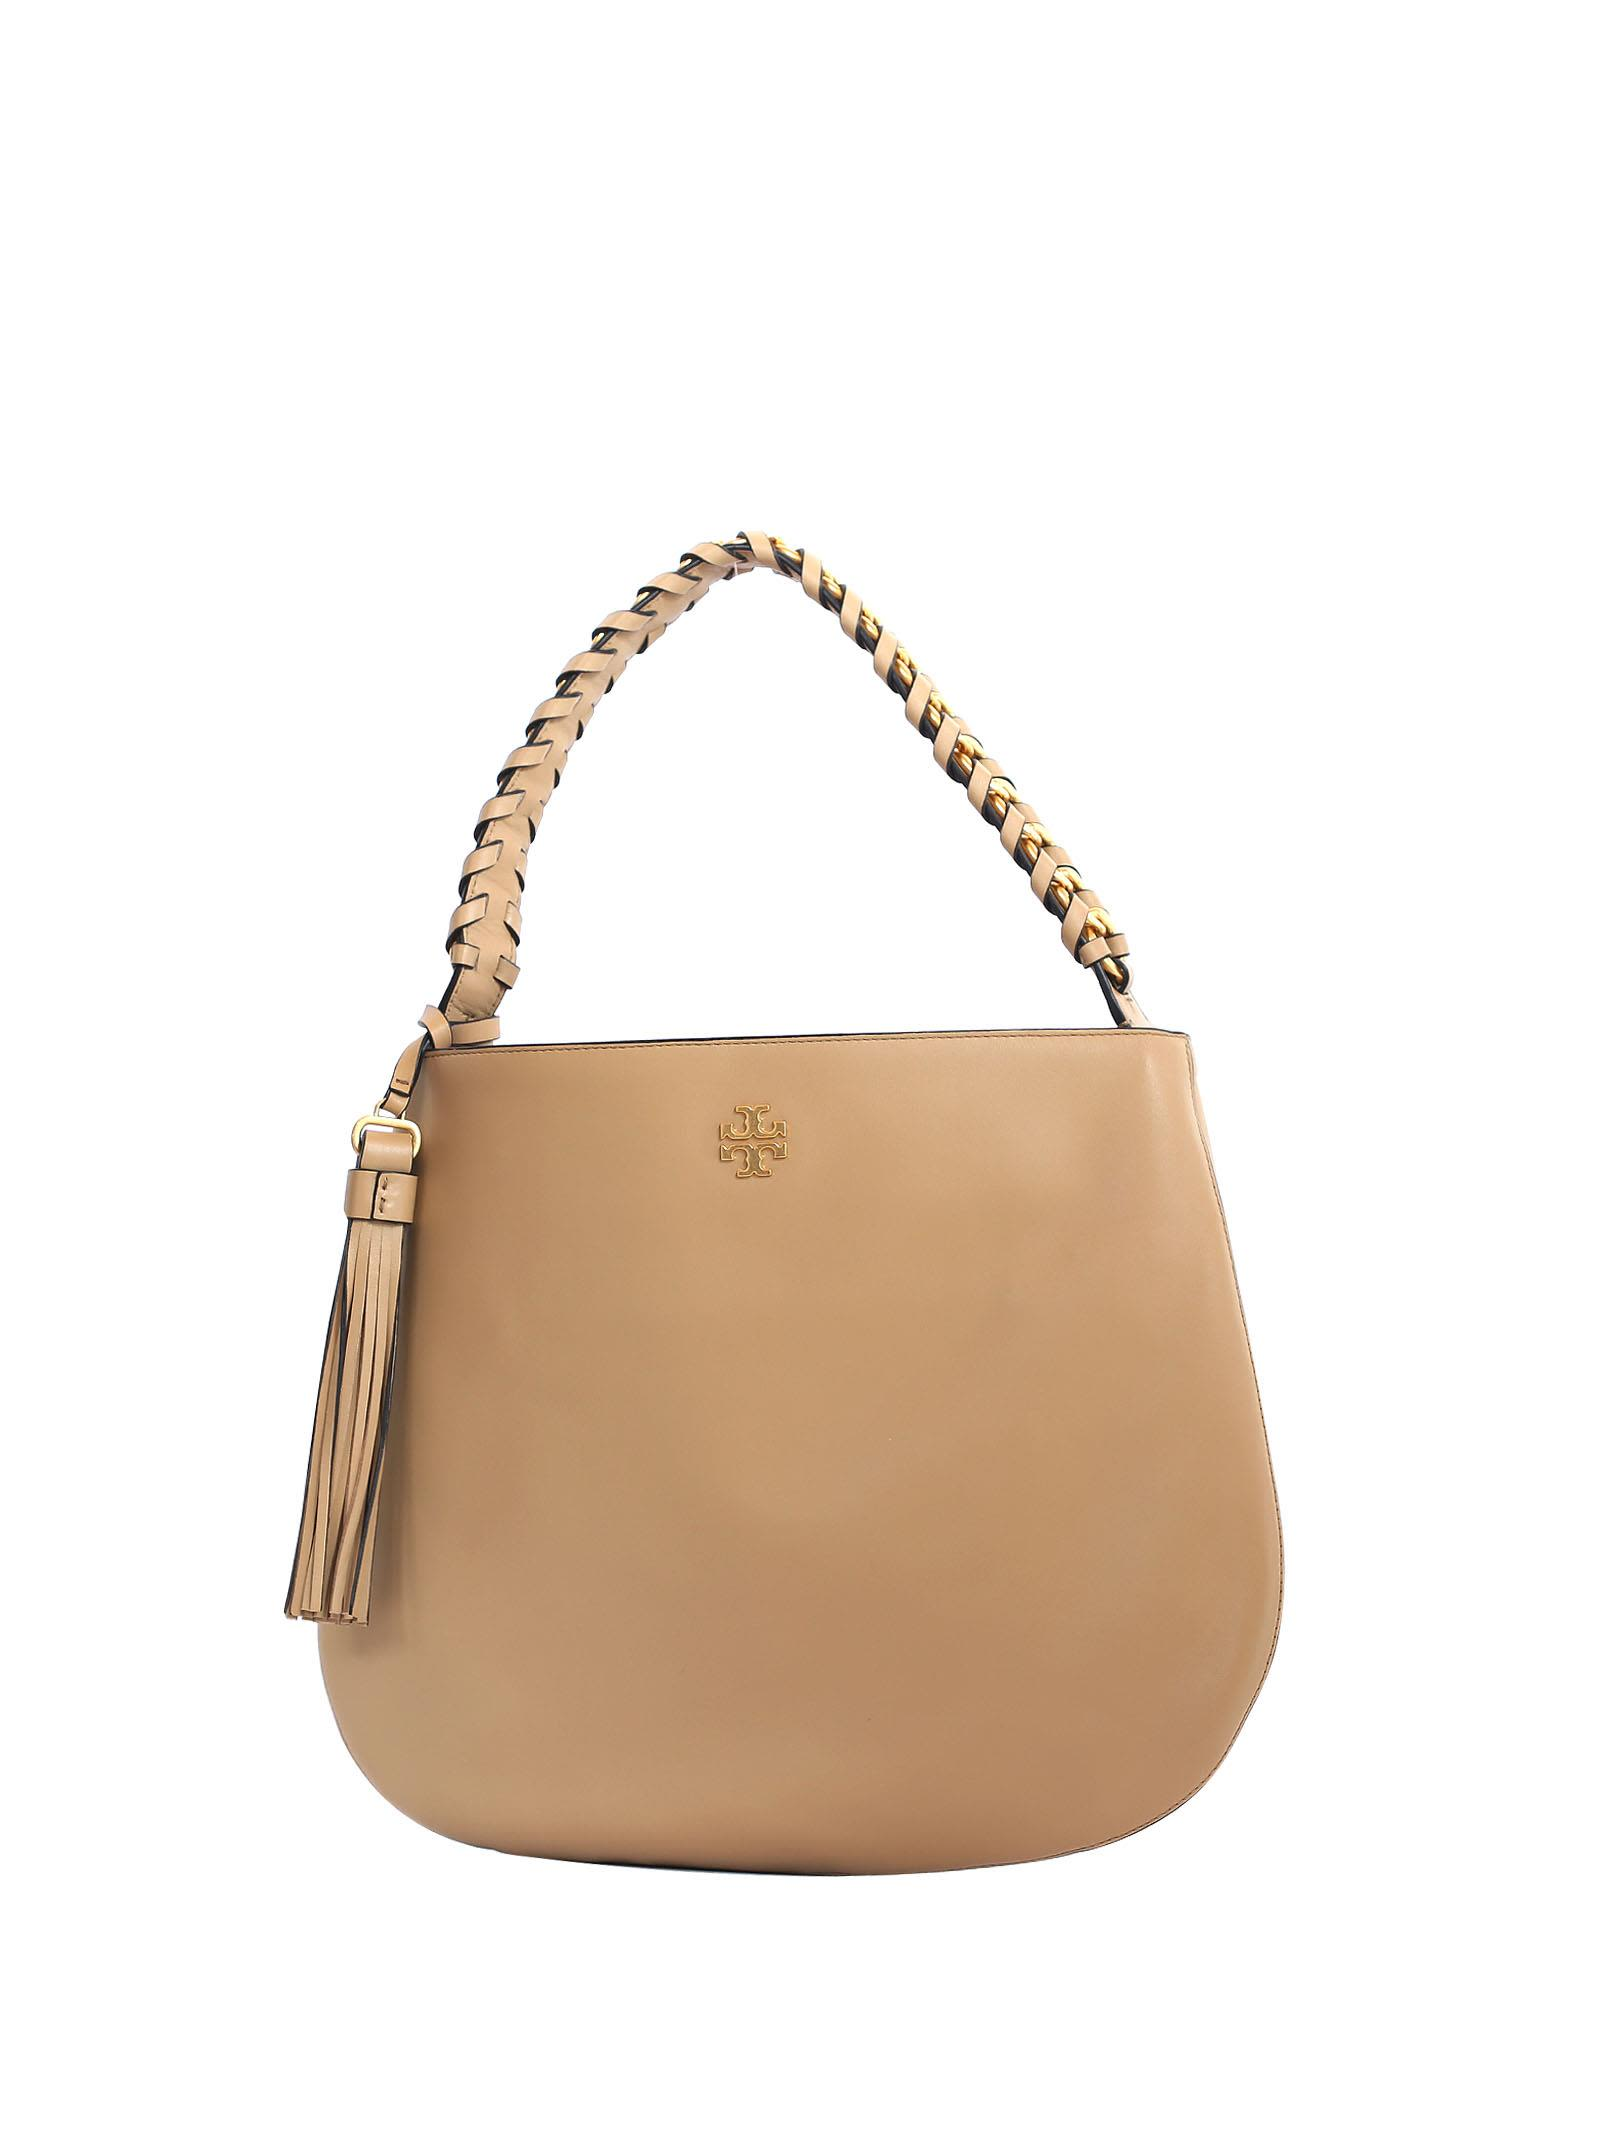 Tory Burch Brooke Hobo Bag